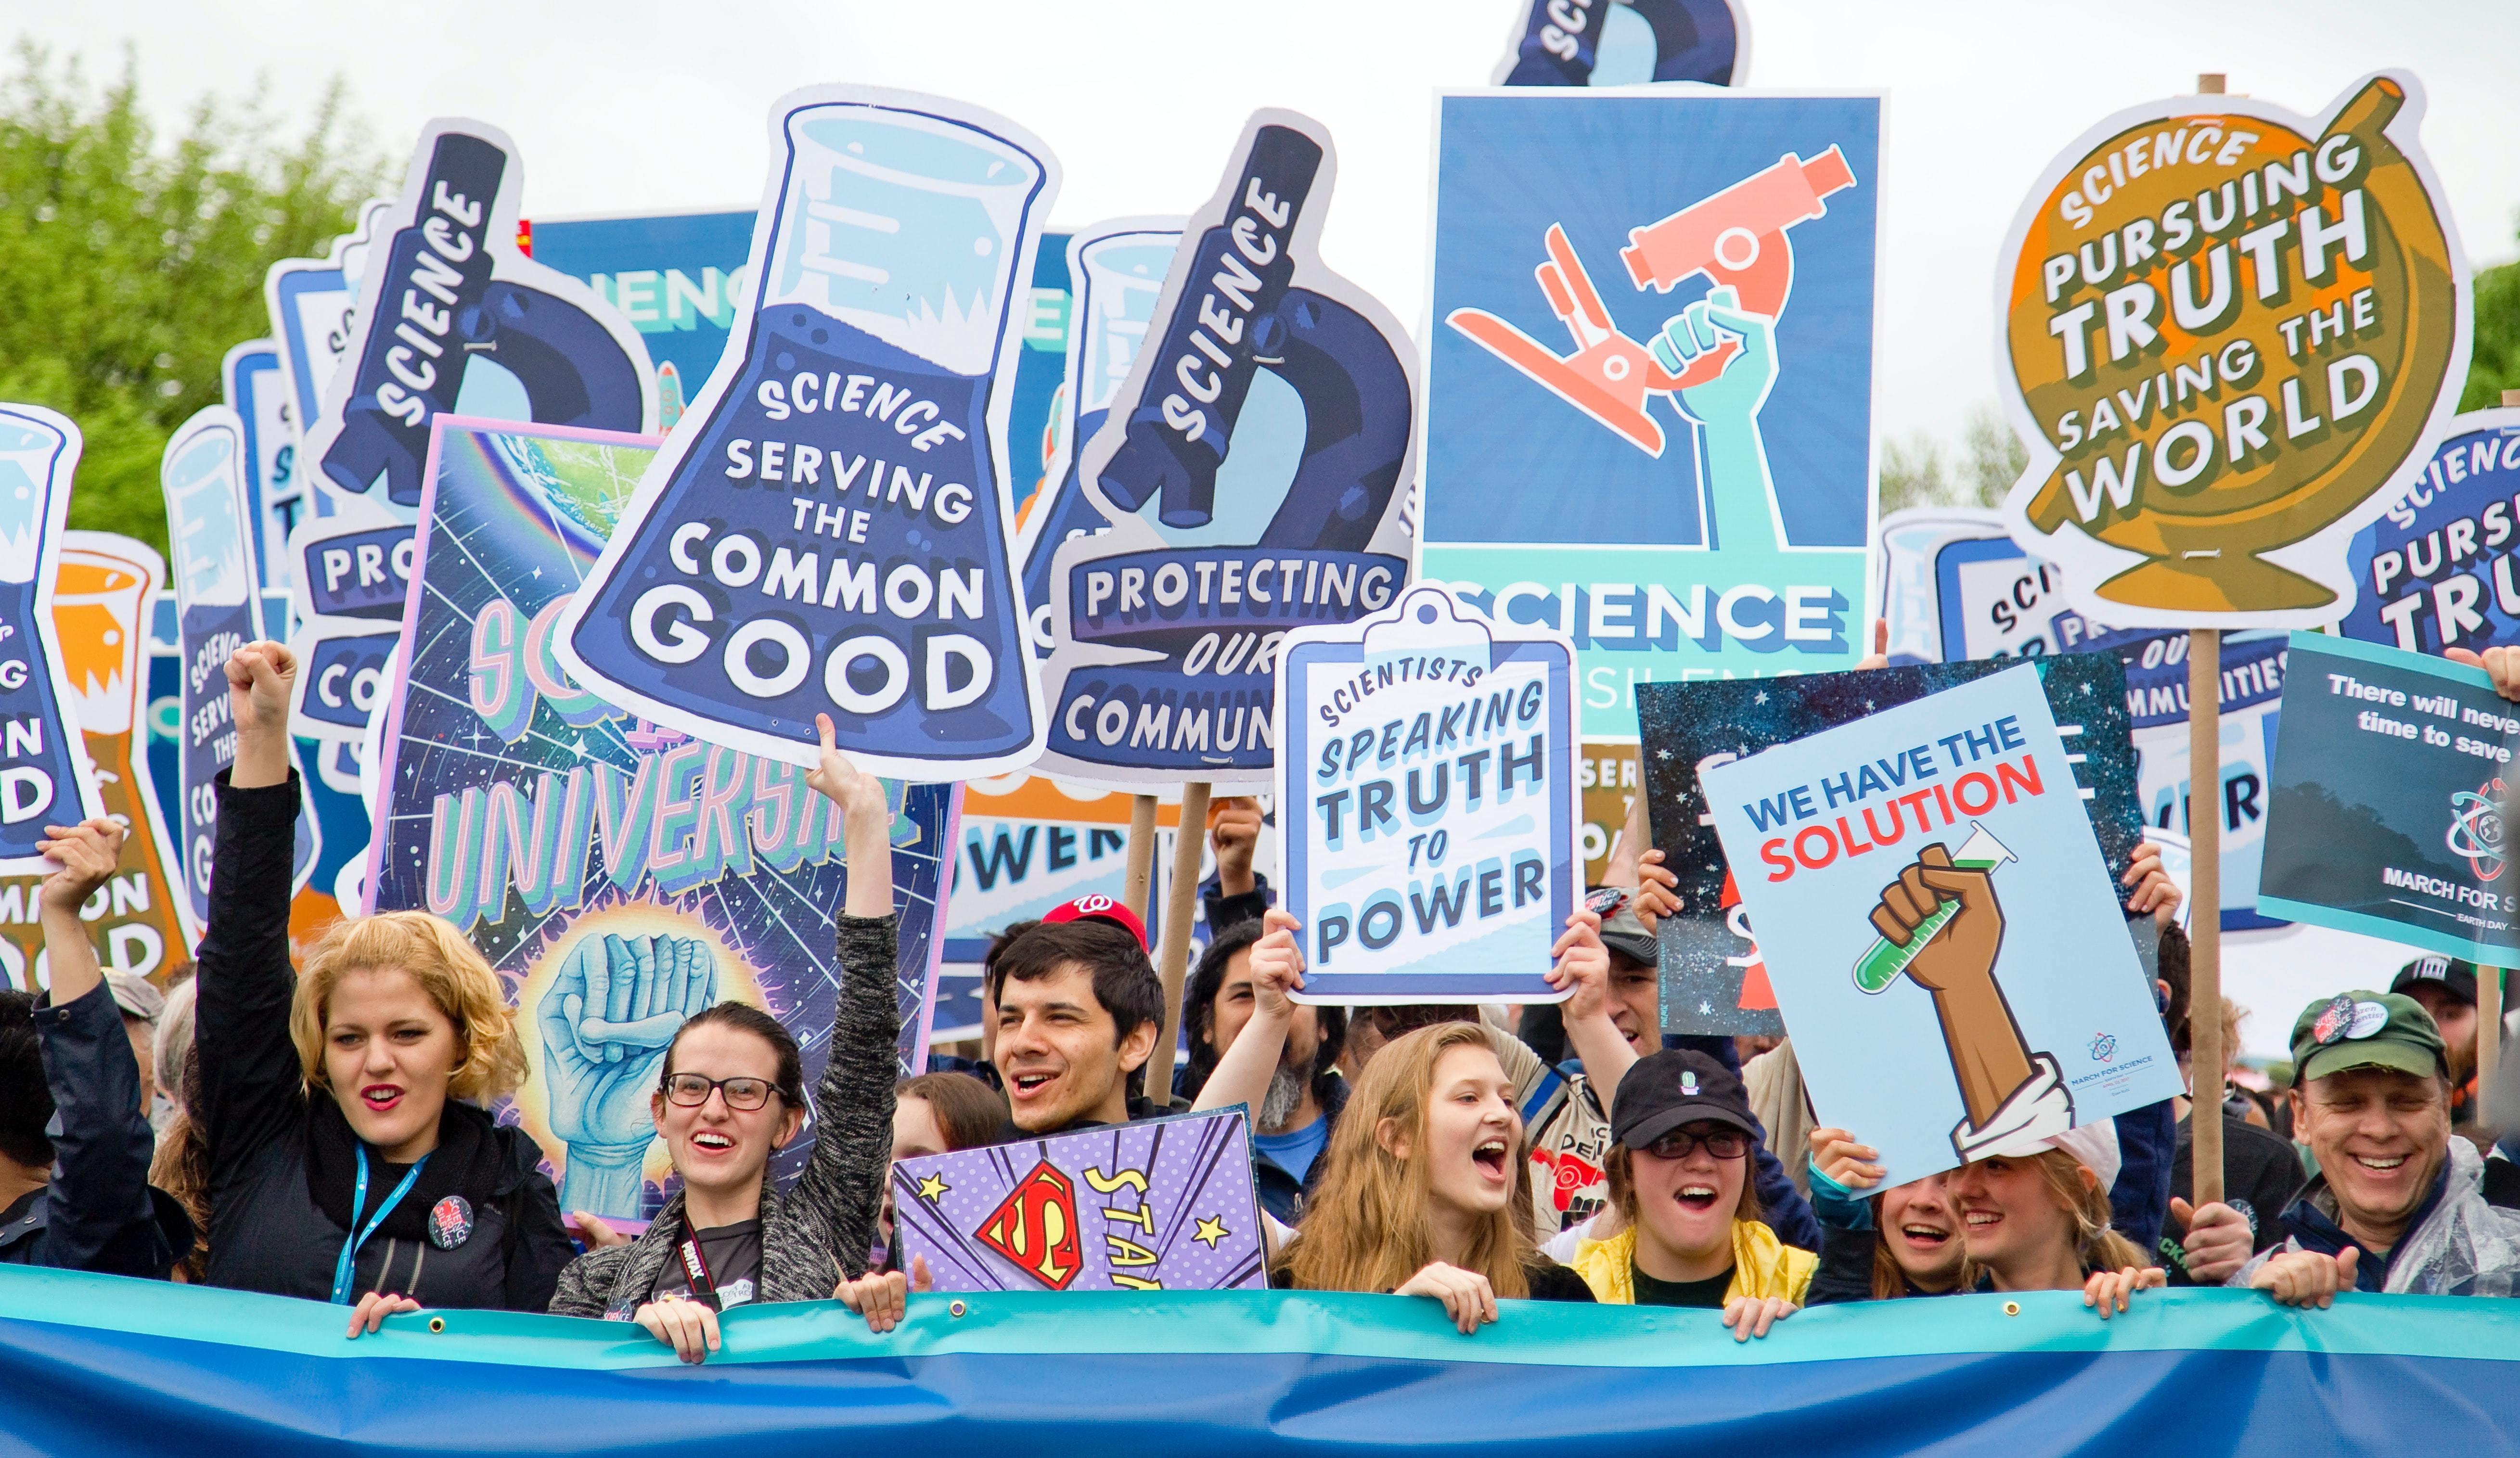 On a rain-soaked day, thousands marched on Washington DC to fight for science funding and scientific analysis in politics